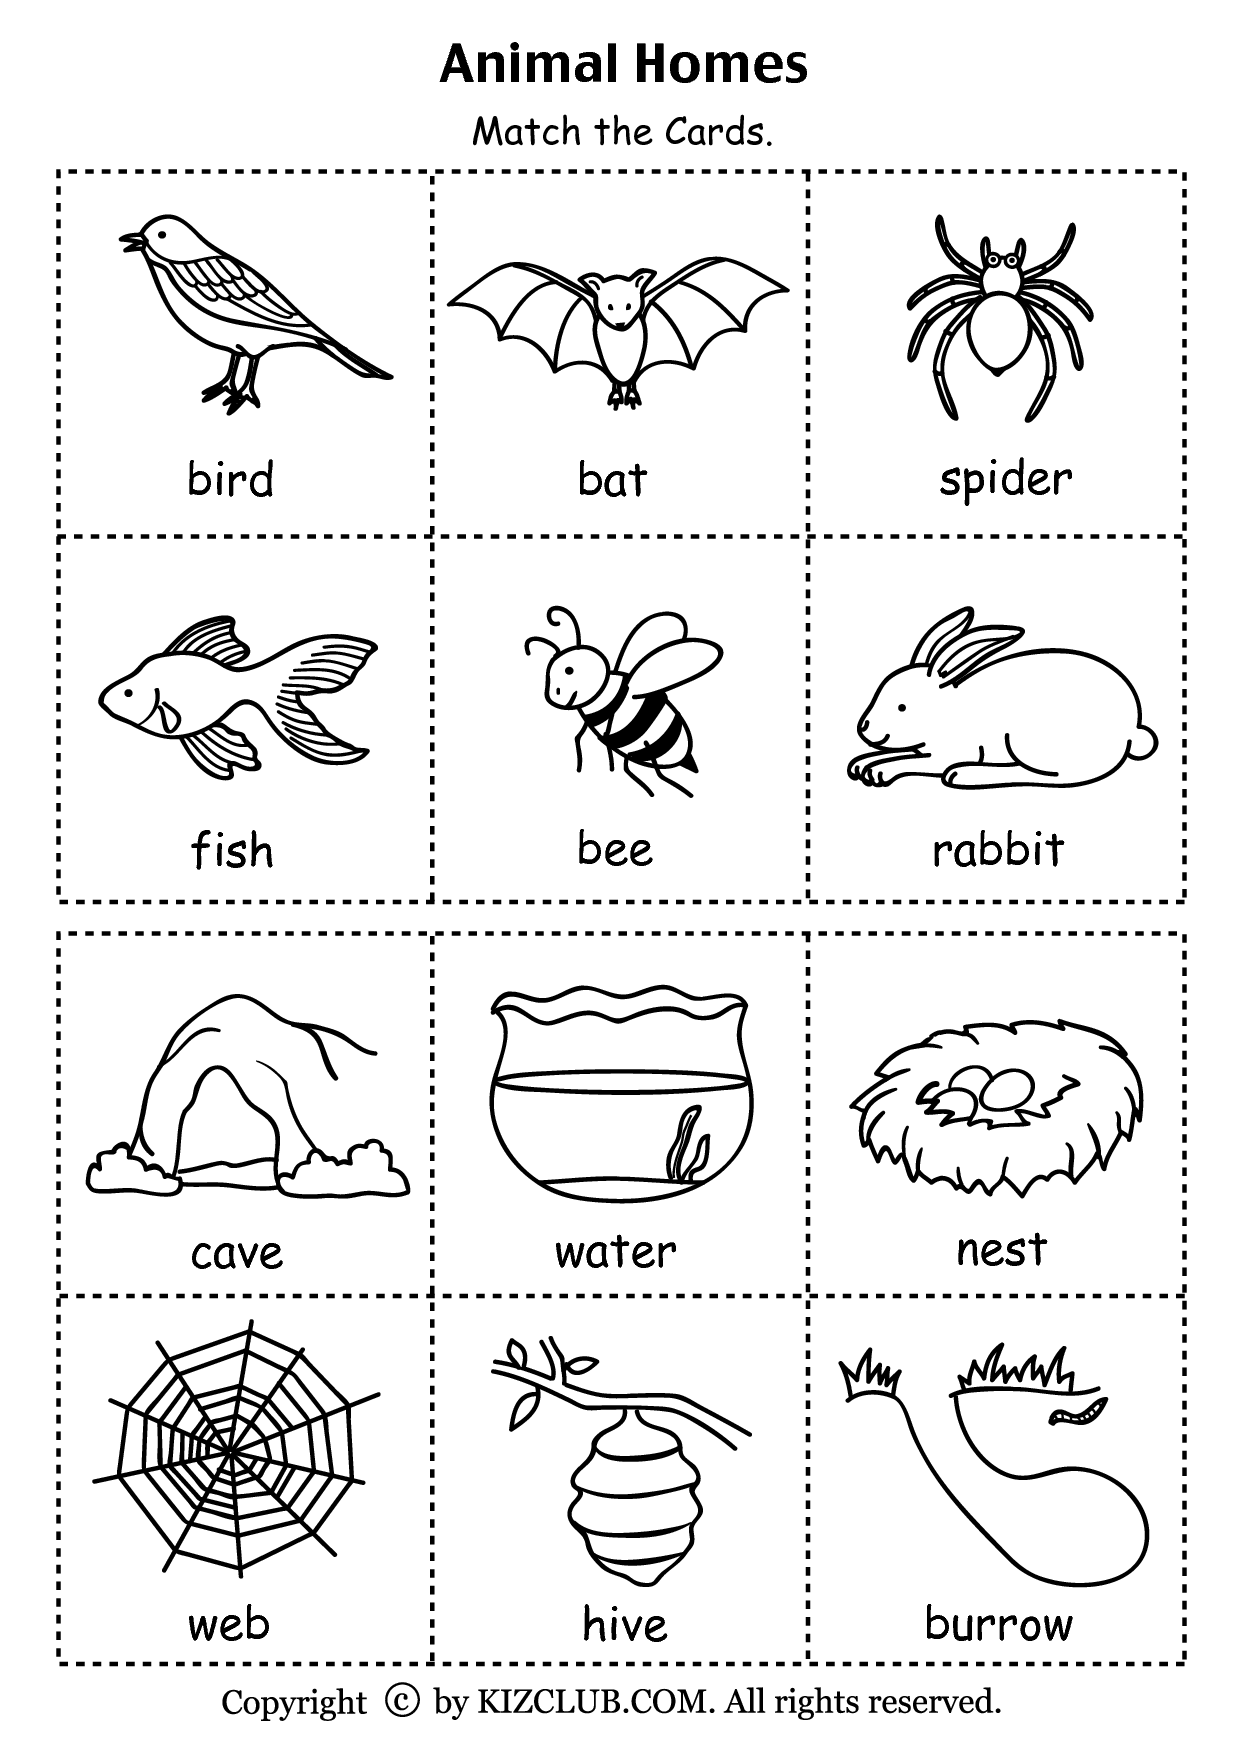 Plant Adaptations Worksheet For Kindergarten